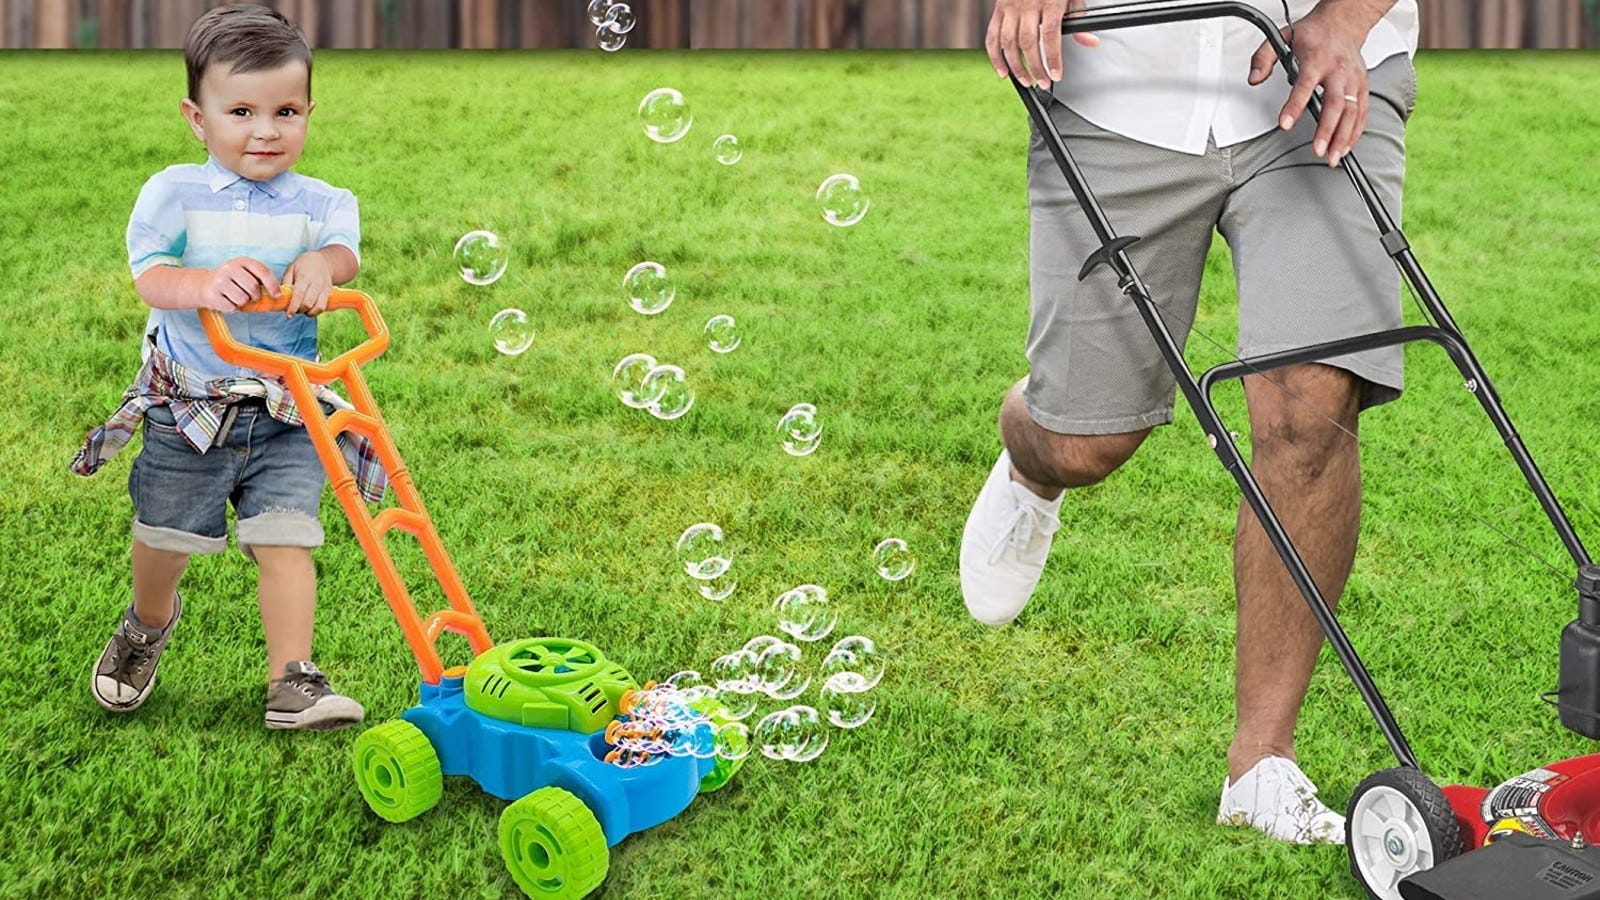 little boy pushing a lawnmower that is also a bubble machine